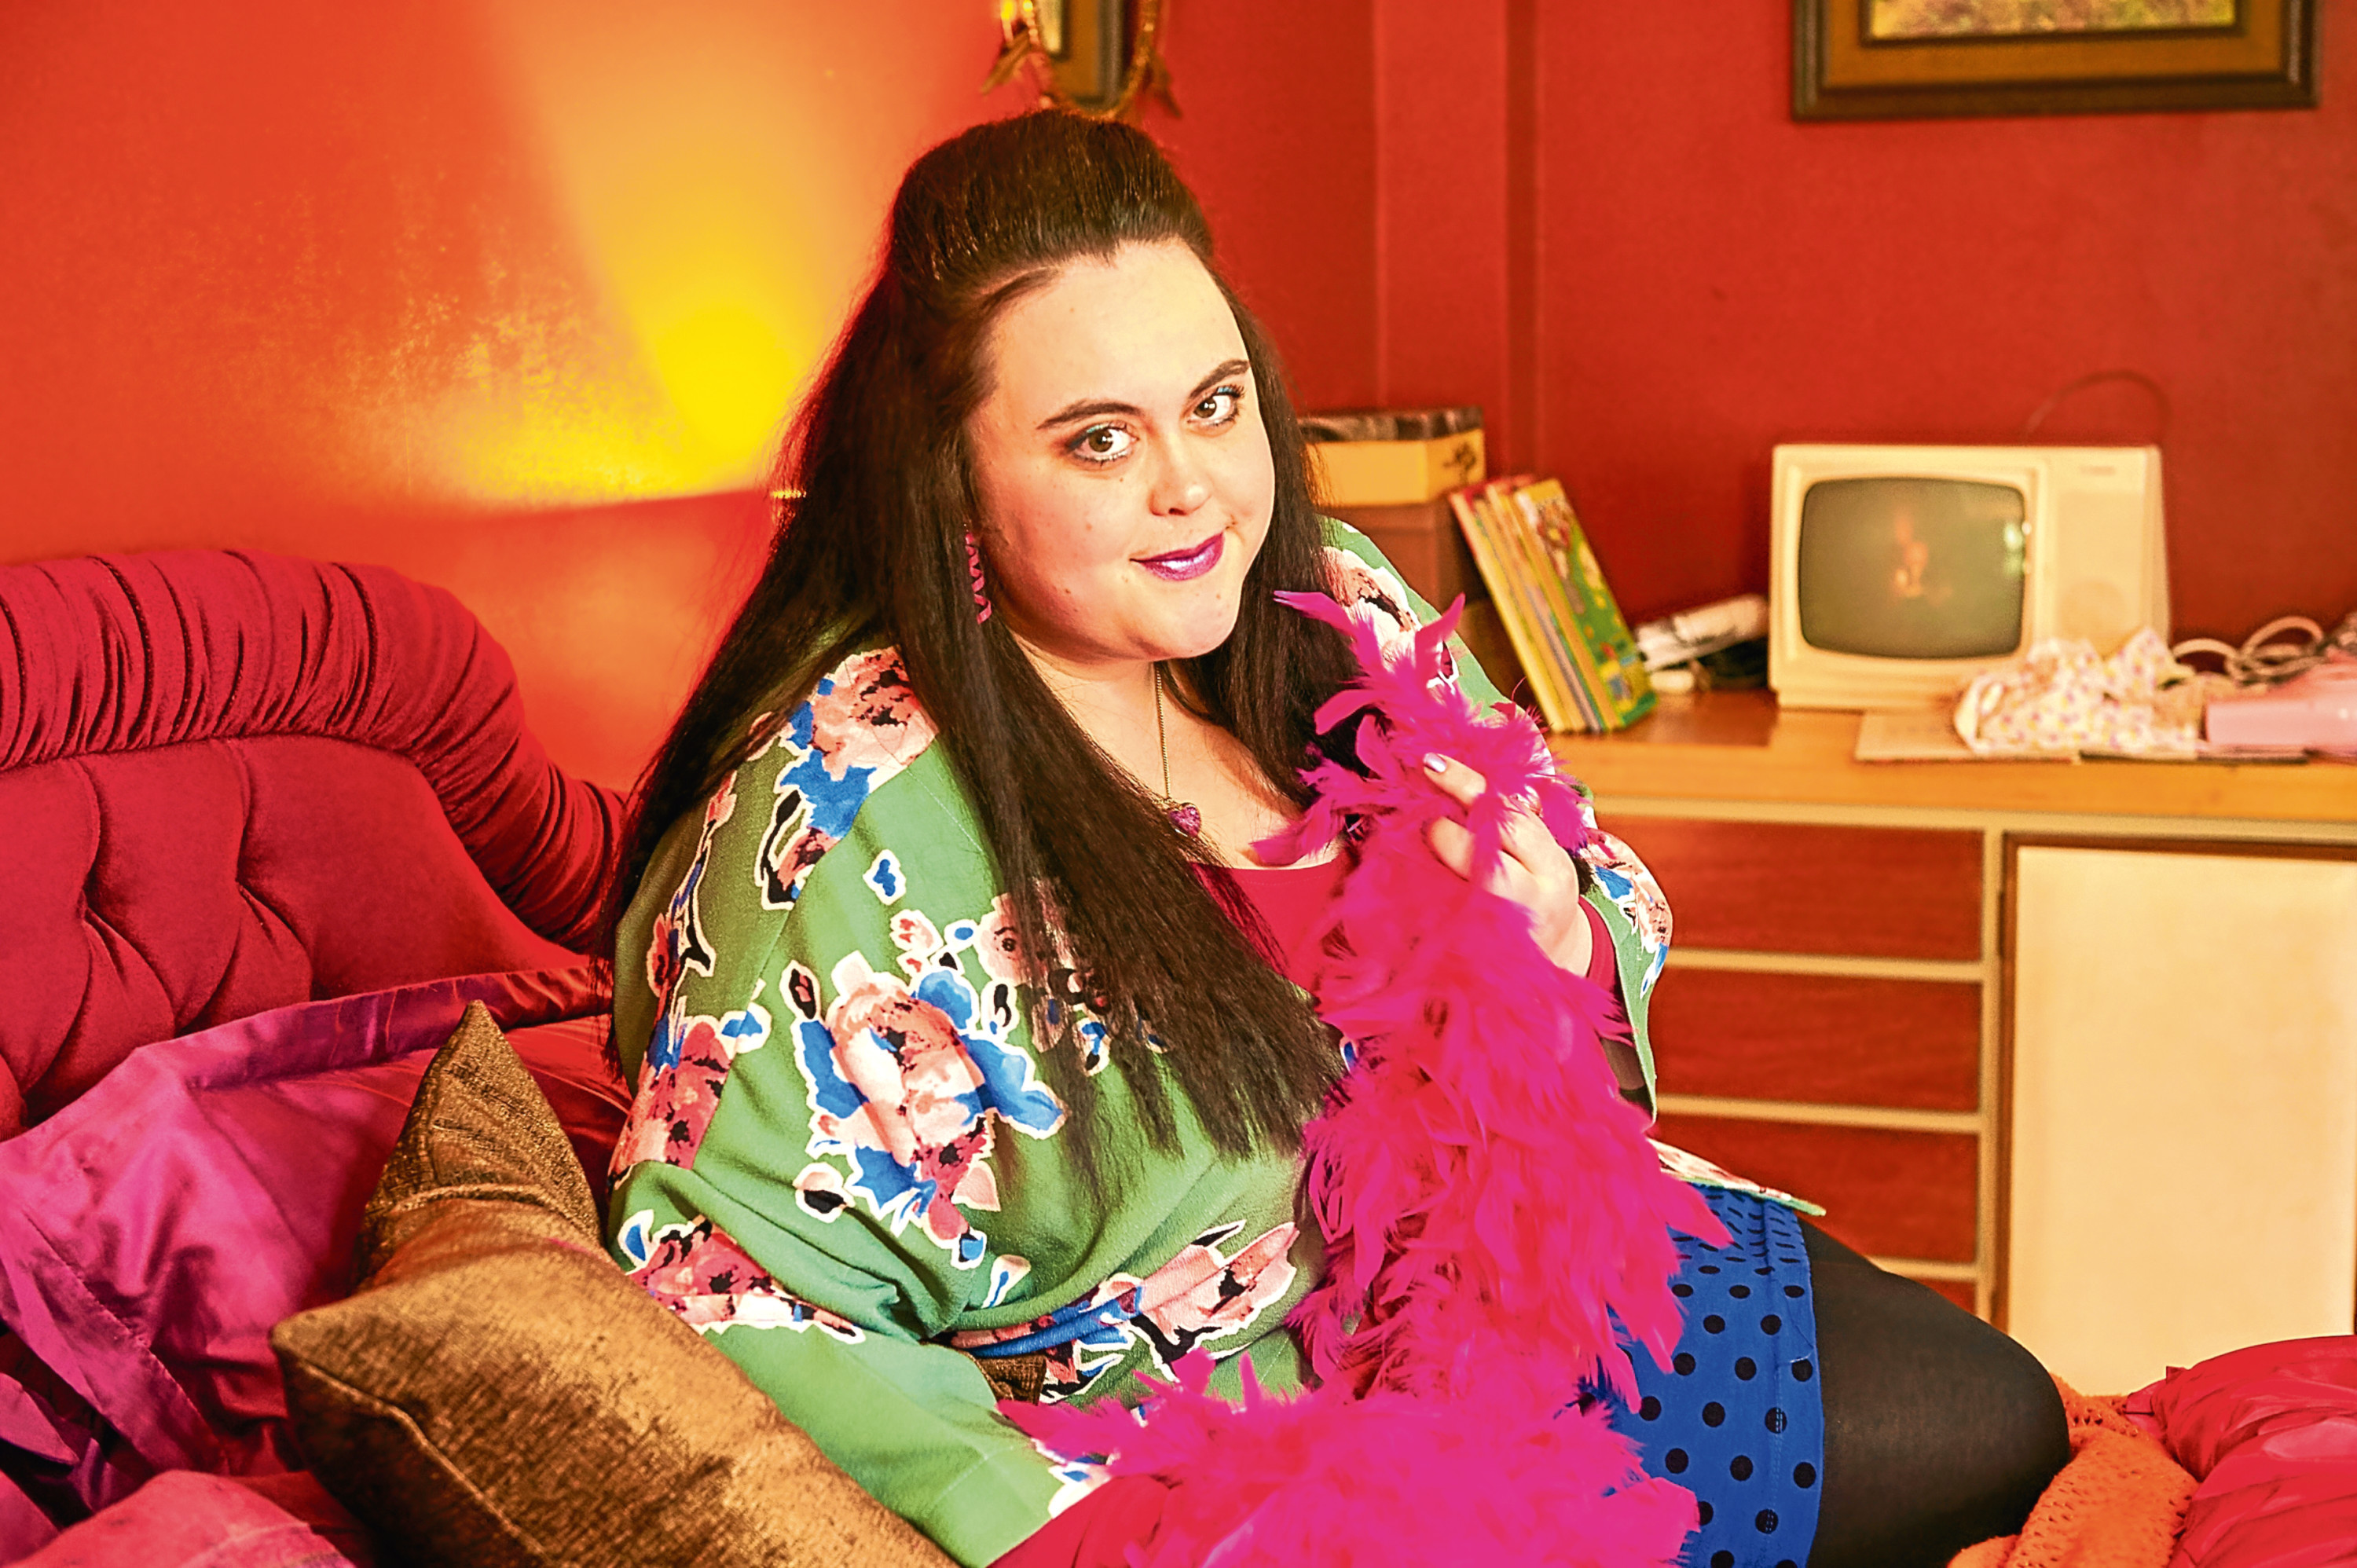 A CPL production for ITV.  Pictured: SHARON ROONEY as Dawn.   This image is the copyright of ITV and must only be used in relation to Brief Encounters.